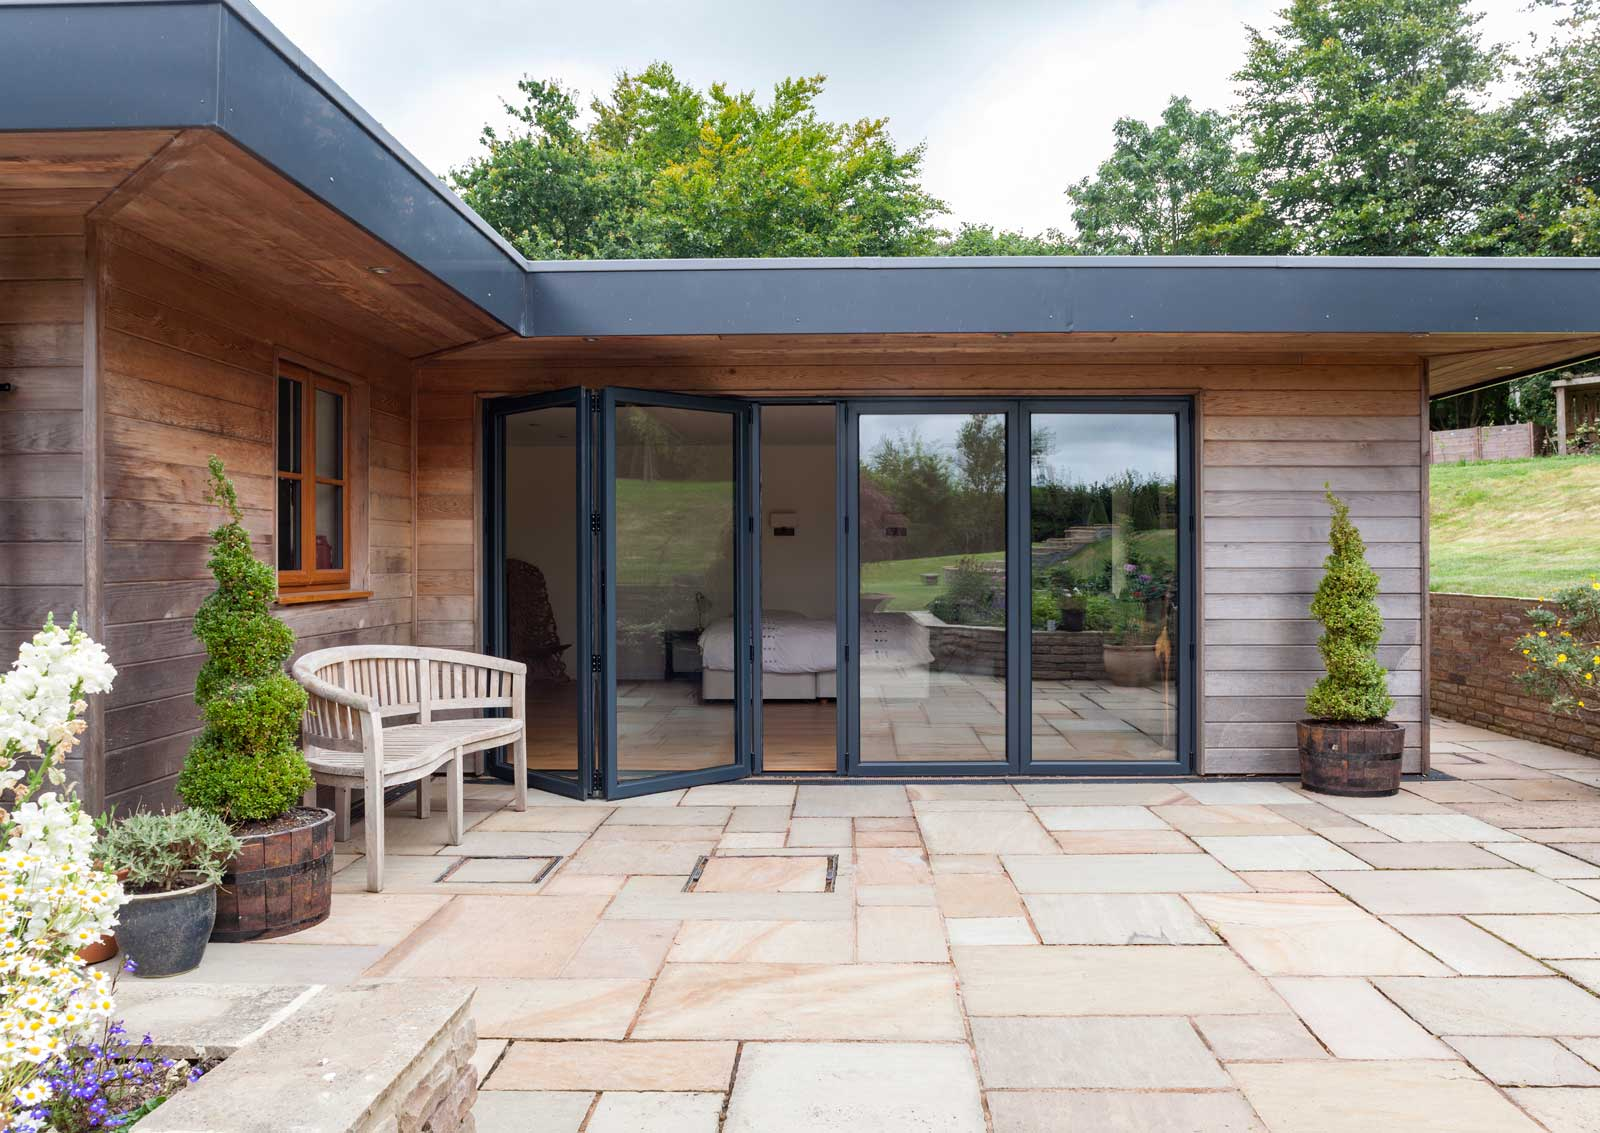 Bifold Door Costs Milton Keynes